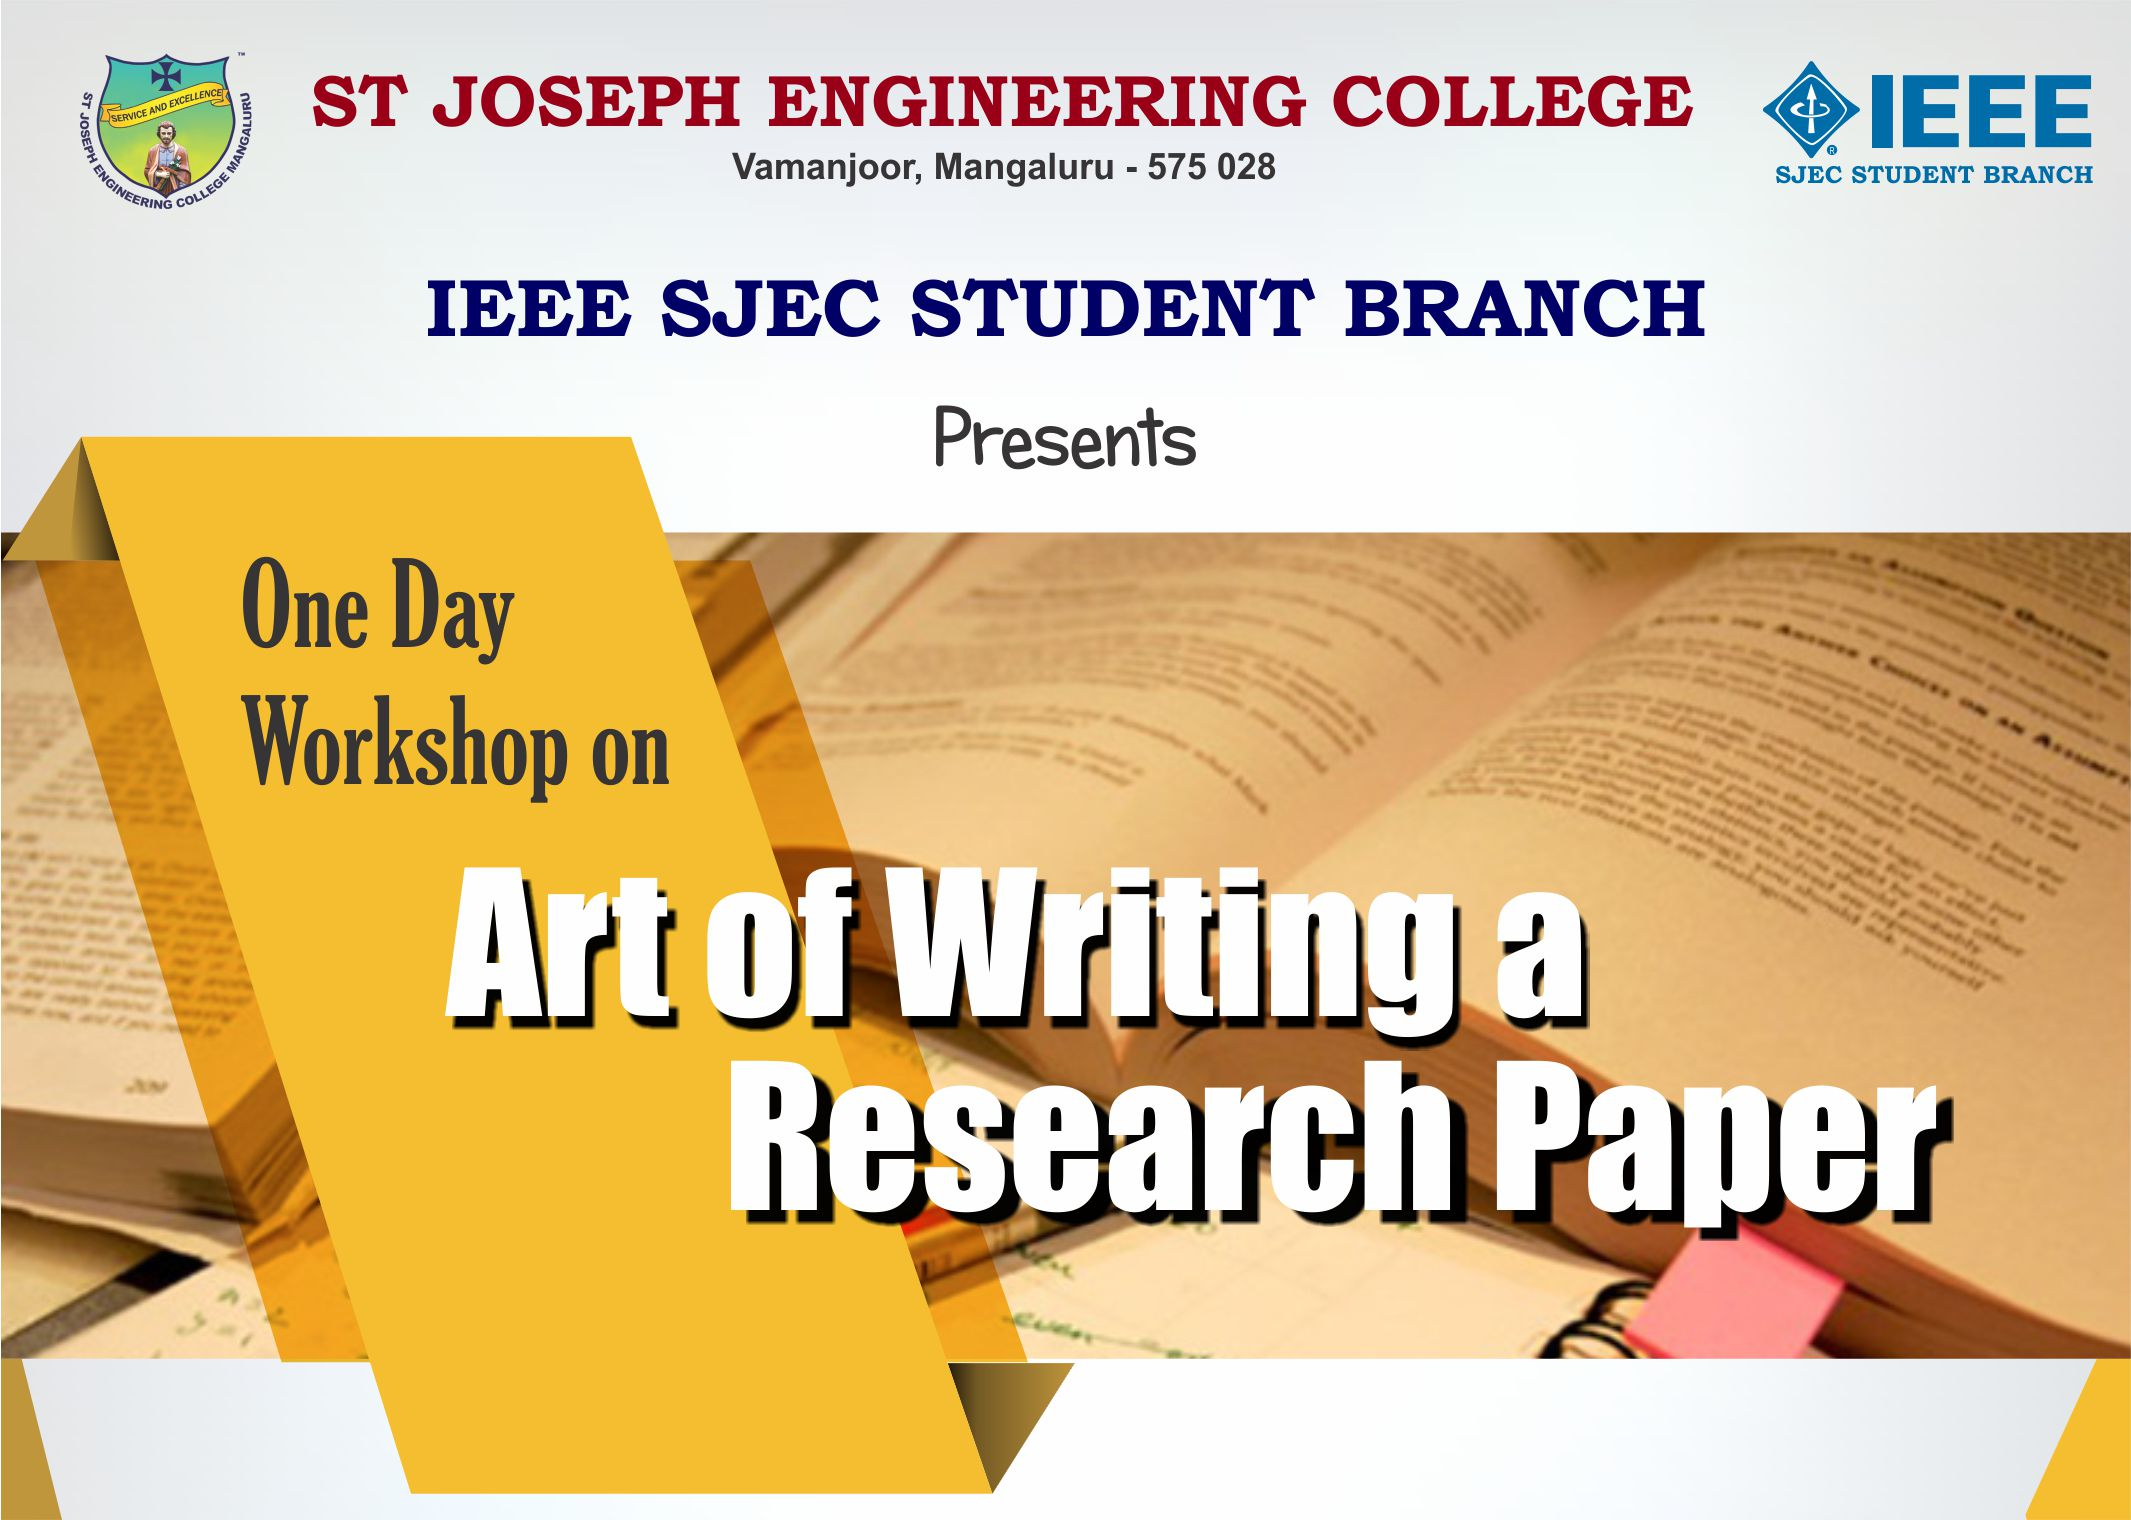 006 Workshop Banner Writing Of Research Fascinating Paper Abstract Review Introduction Full